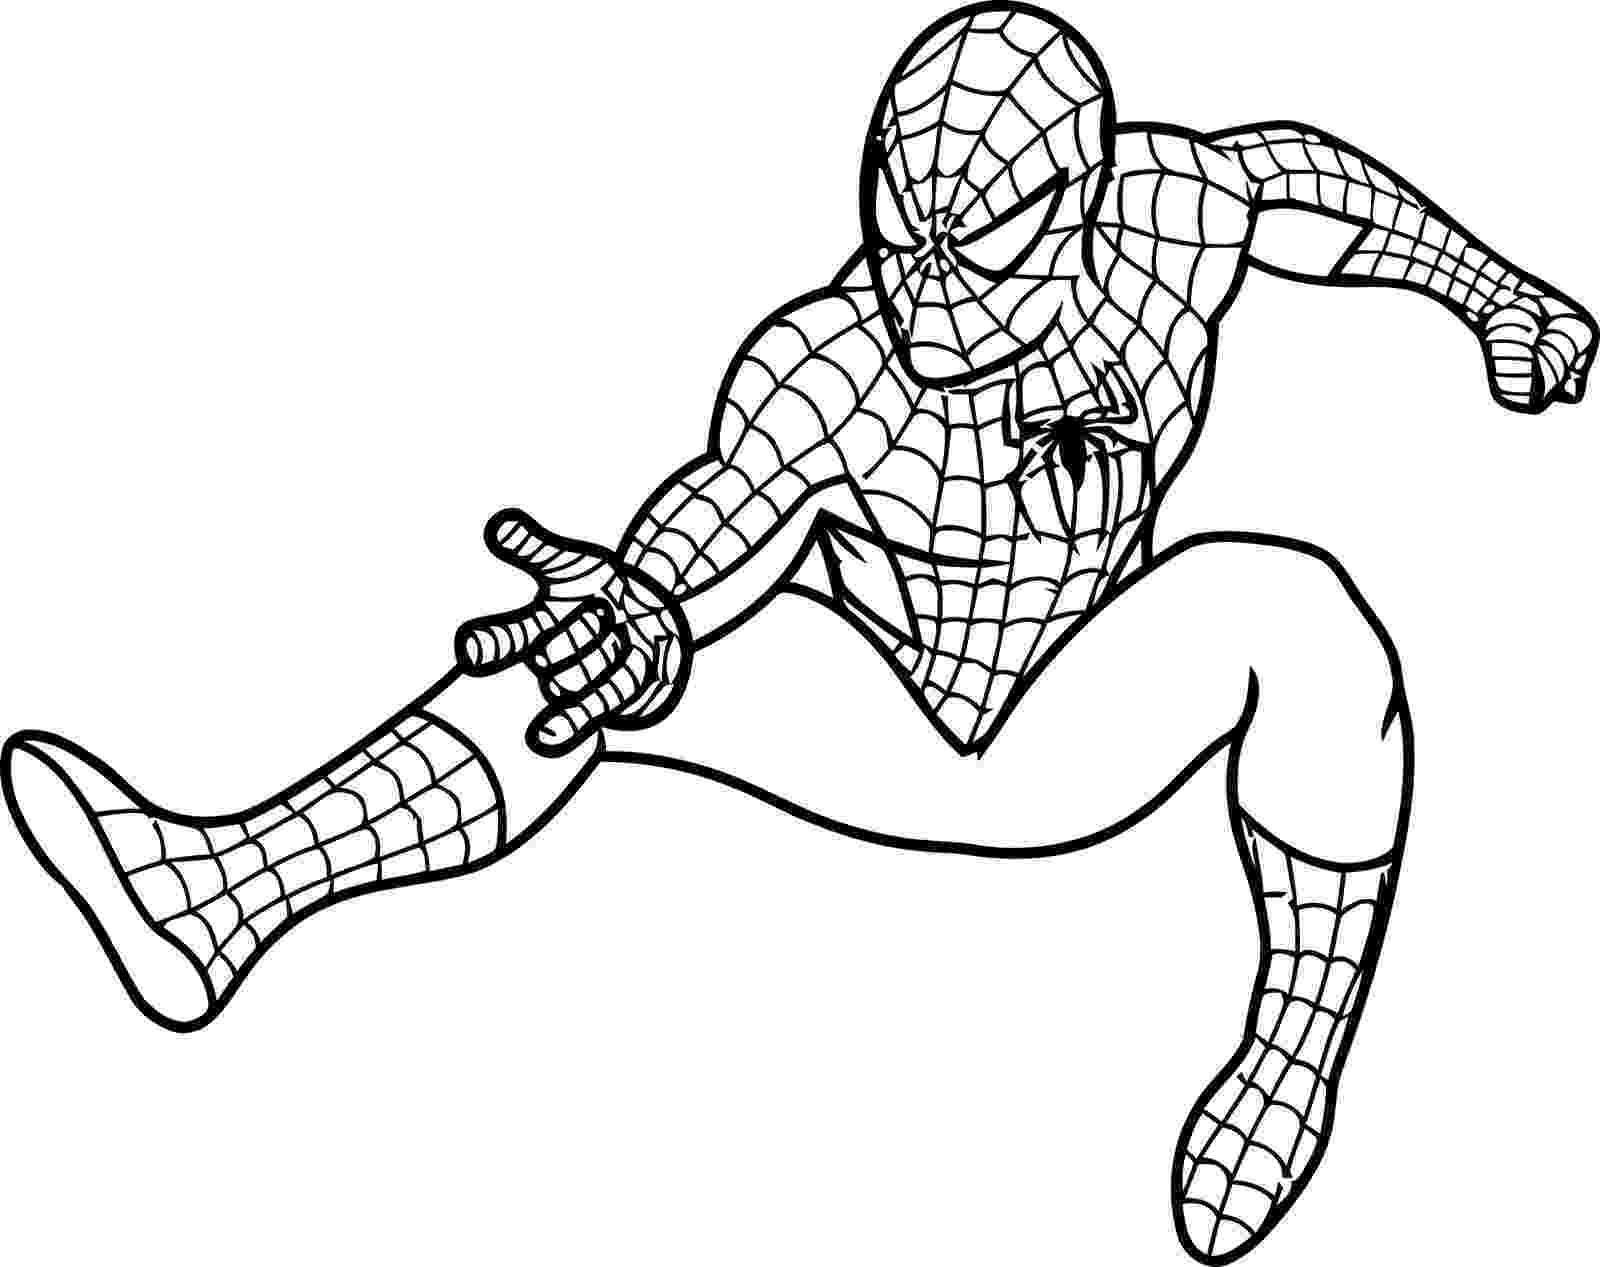 spiderman picture to color spiderman coloring pages team colors picture spiderman to color